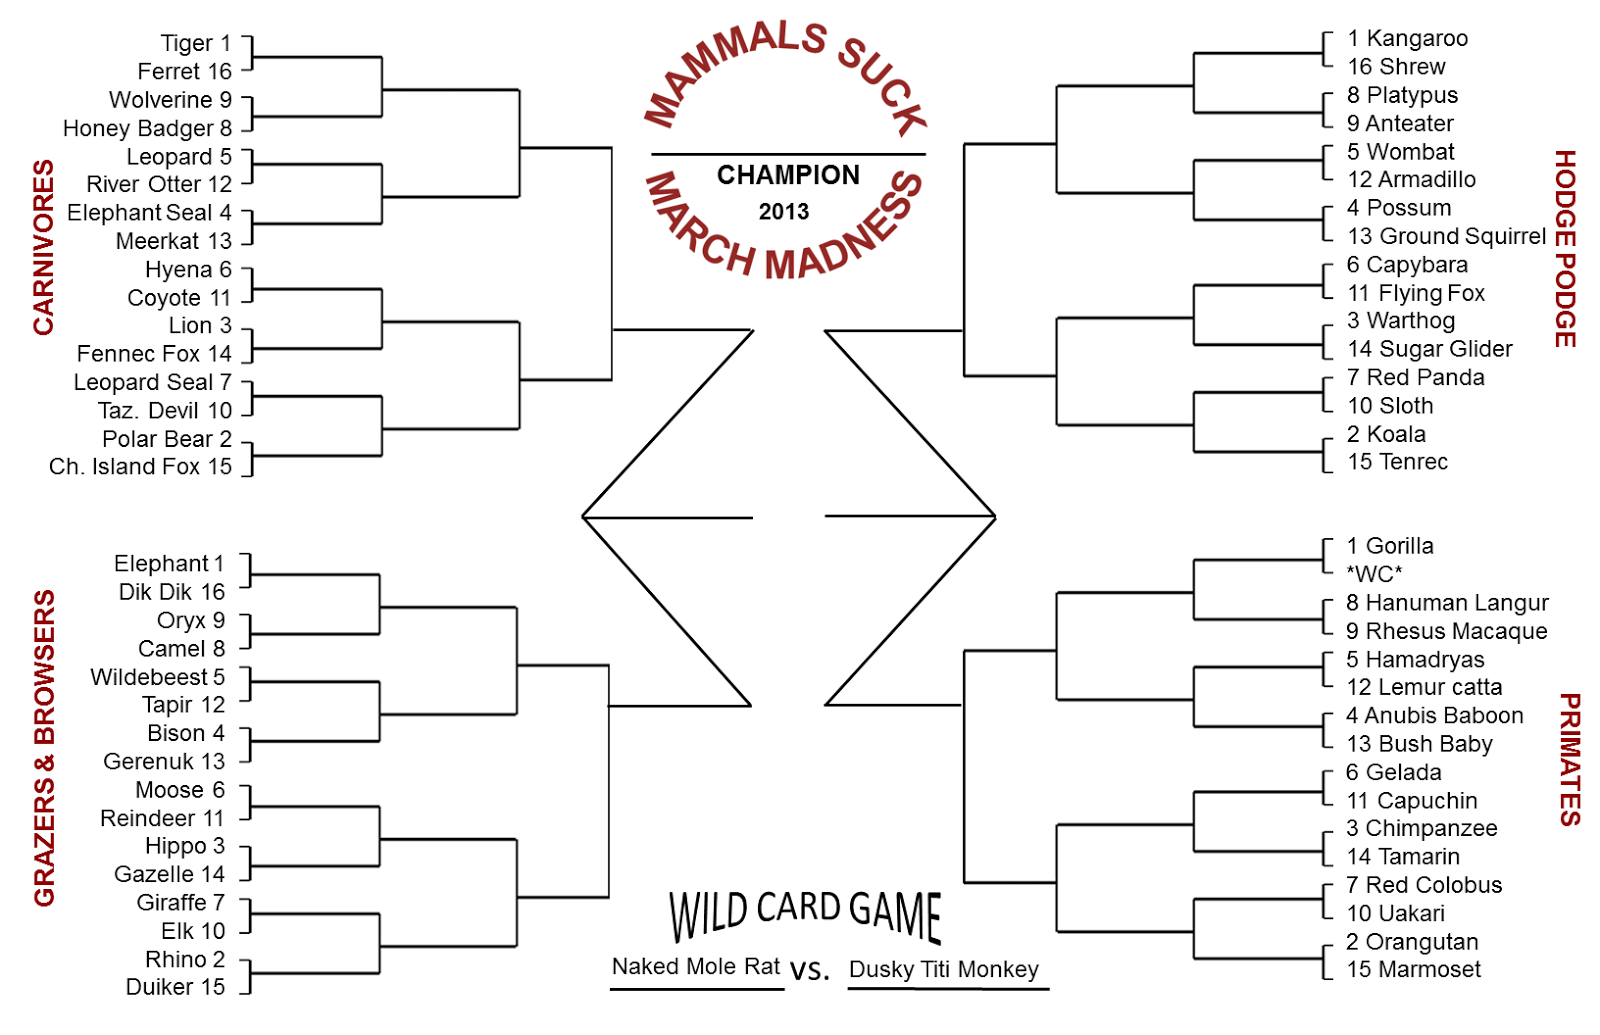 ... filled out an NCAA March Madness Bracket, please see the brack et FAQ